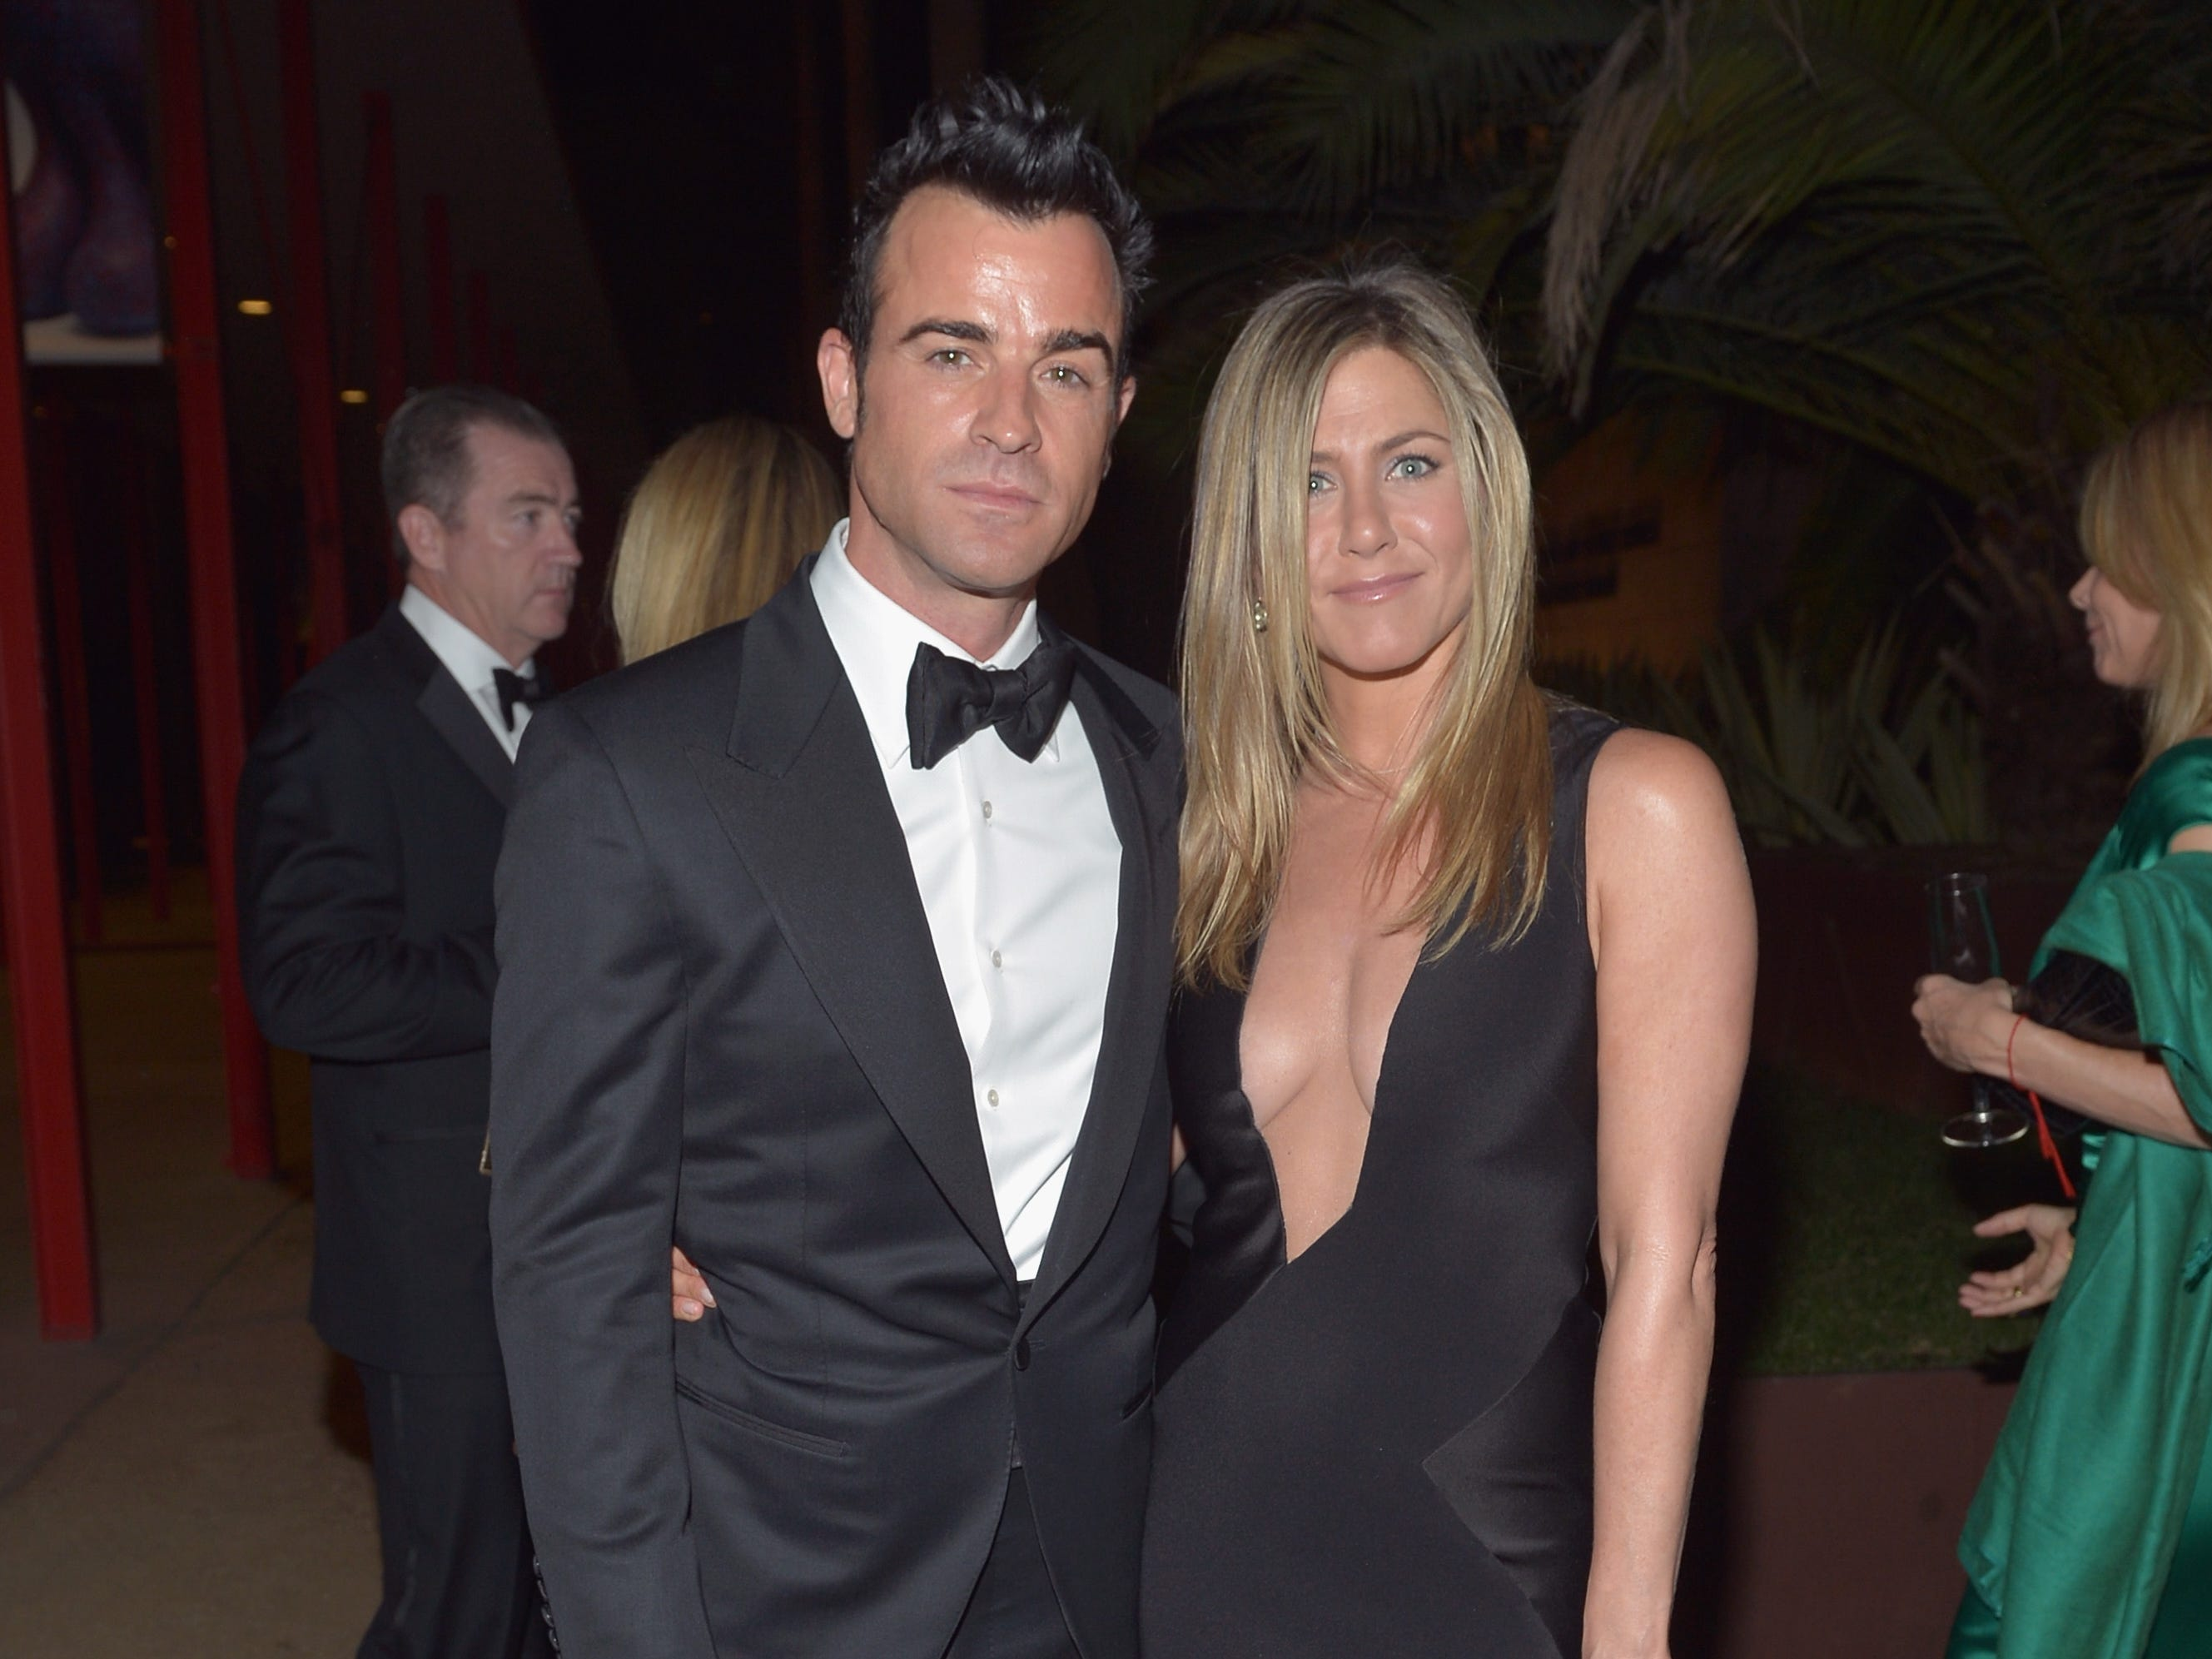 Theroux and Aniston got engaged in October 2012.